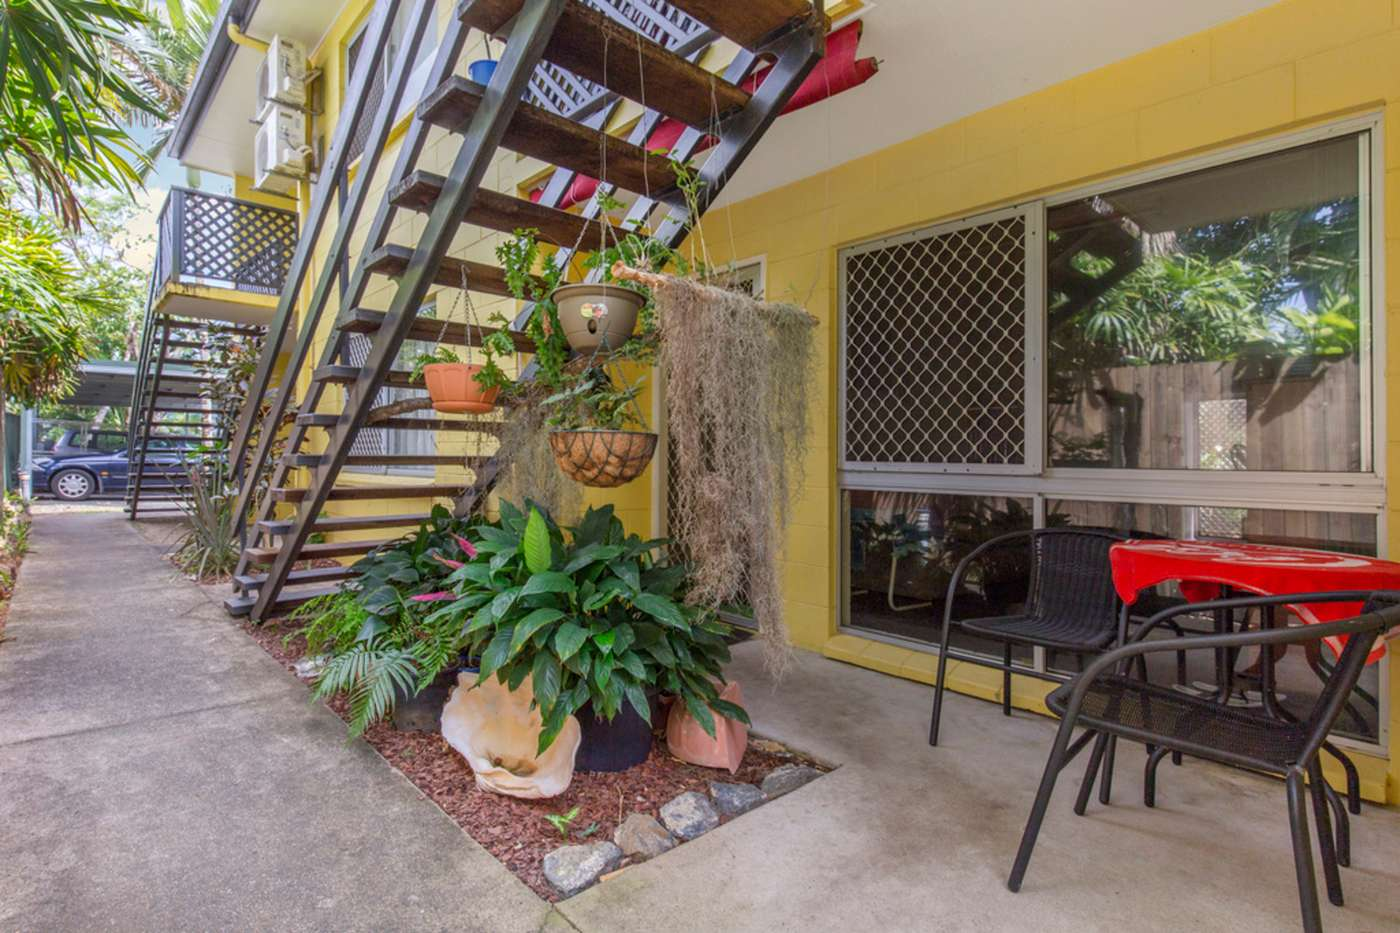 Main view of Homely unit listing, 2/118 Pease Street, Manoora, QLD 4870